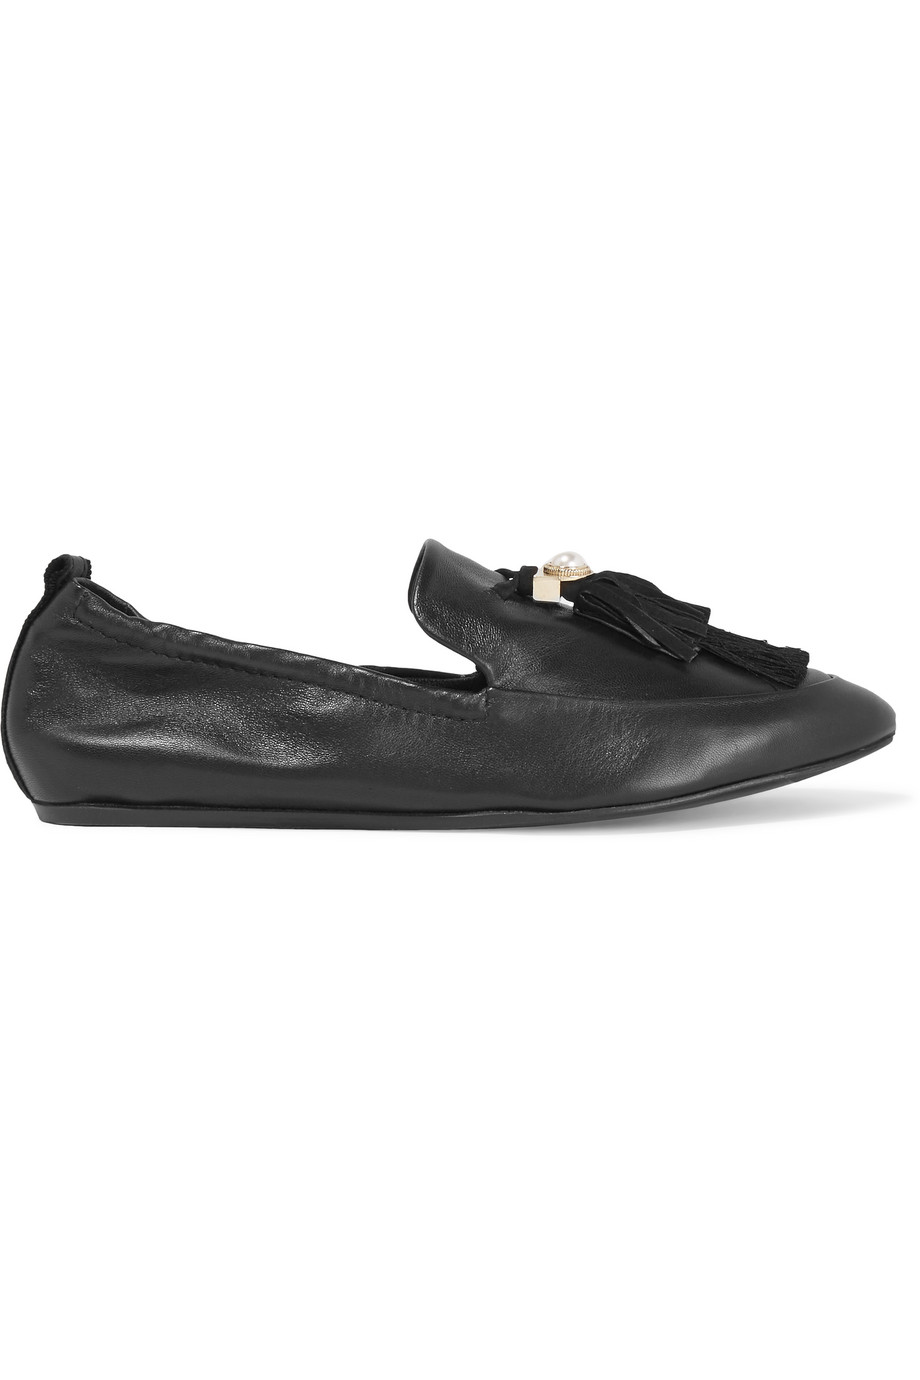 Lanvin Faux Pearl-Embellished Tasseled Leather Slippers, Black, Women's US Size: 6, Size: 36.5